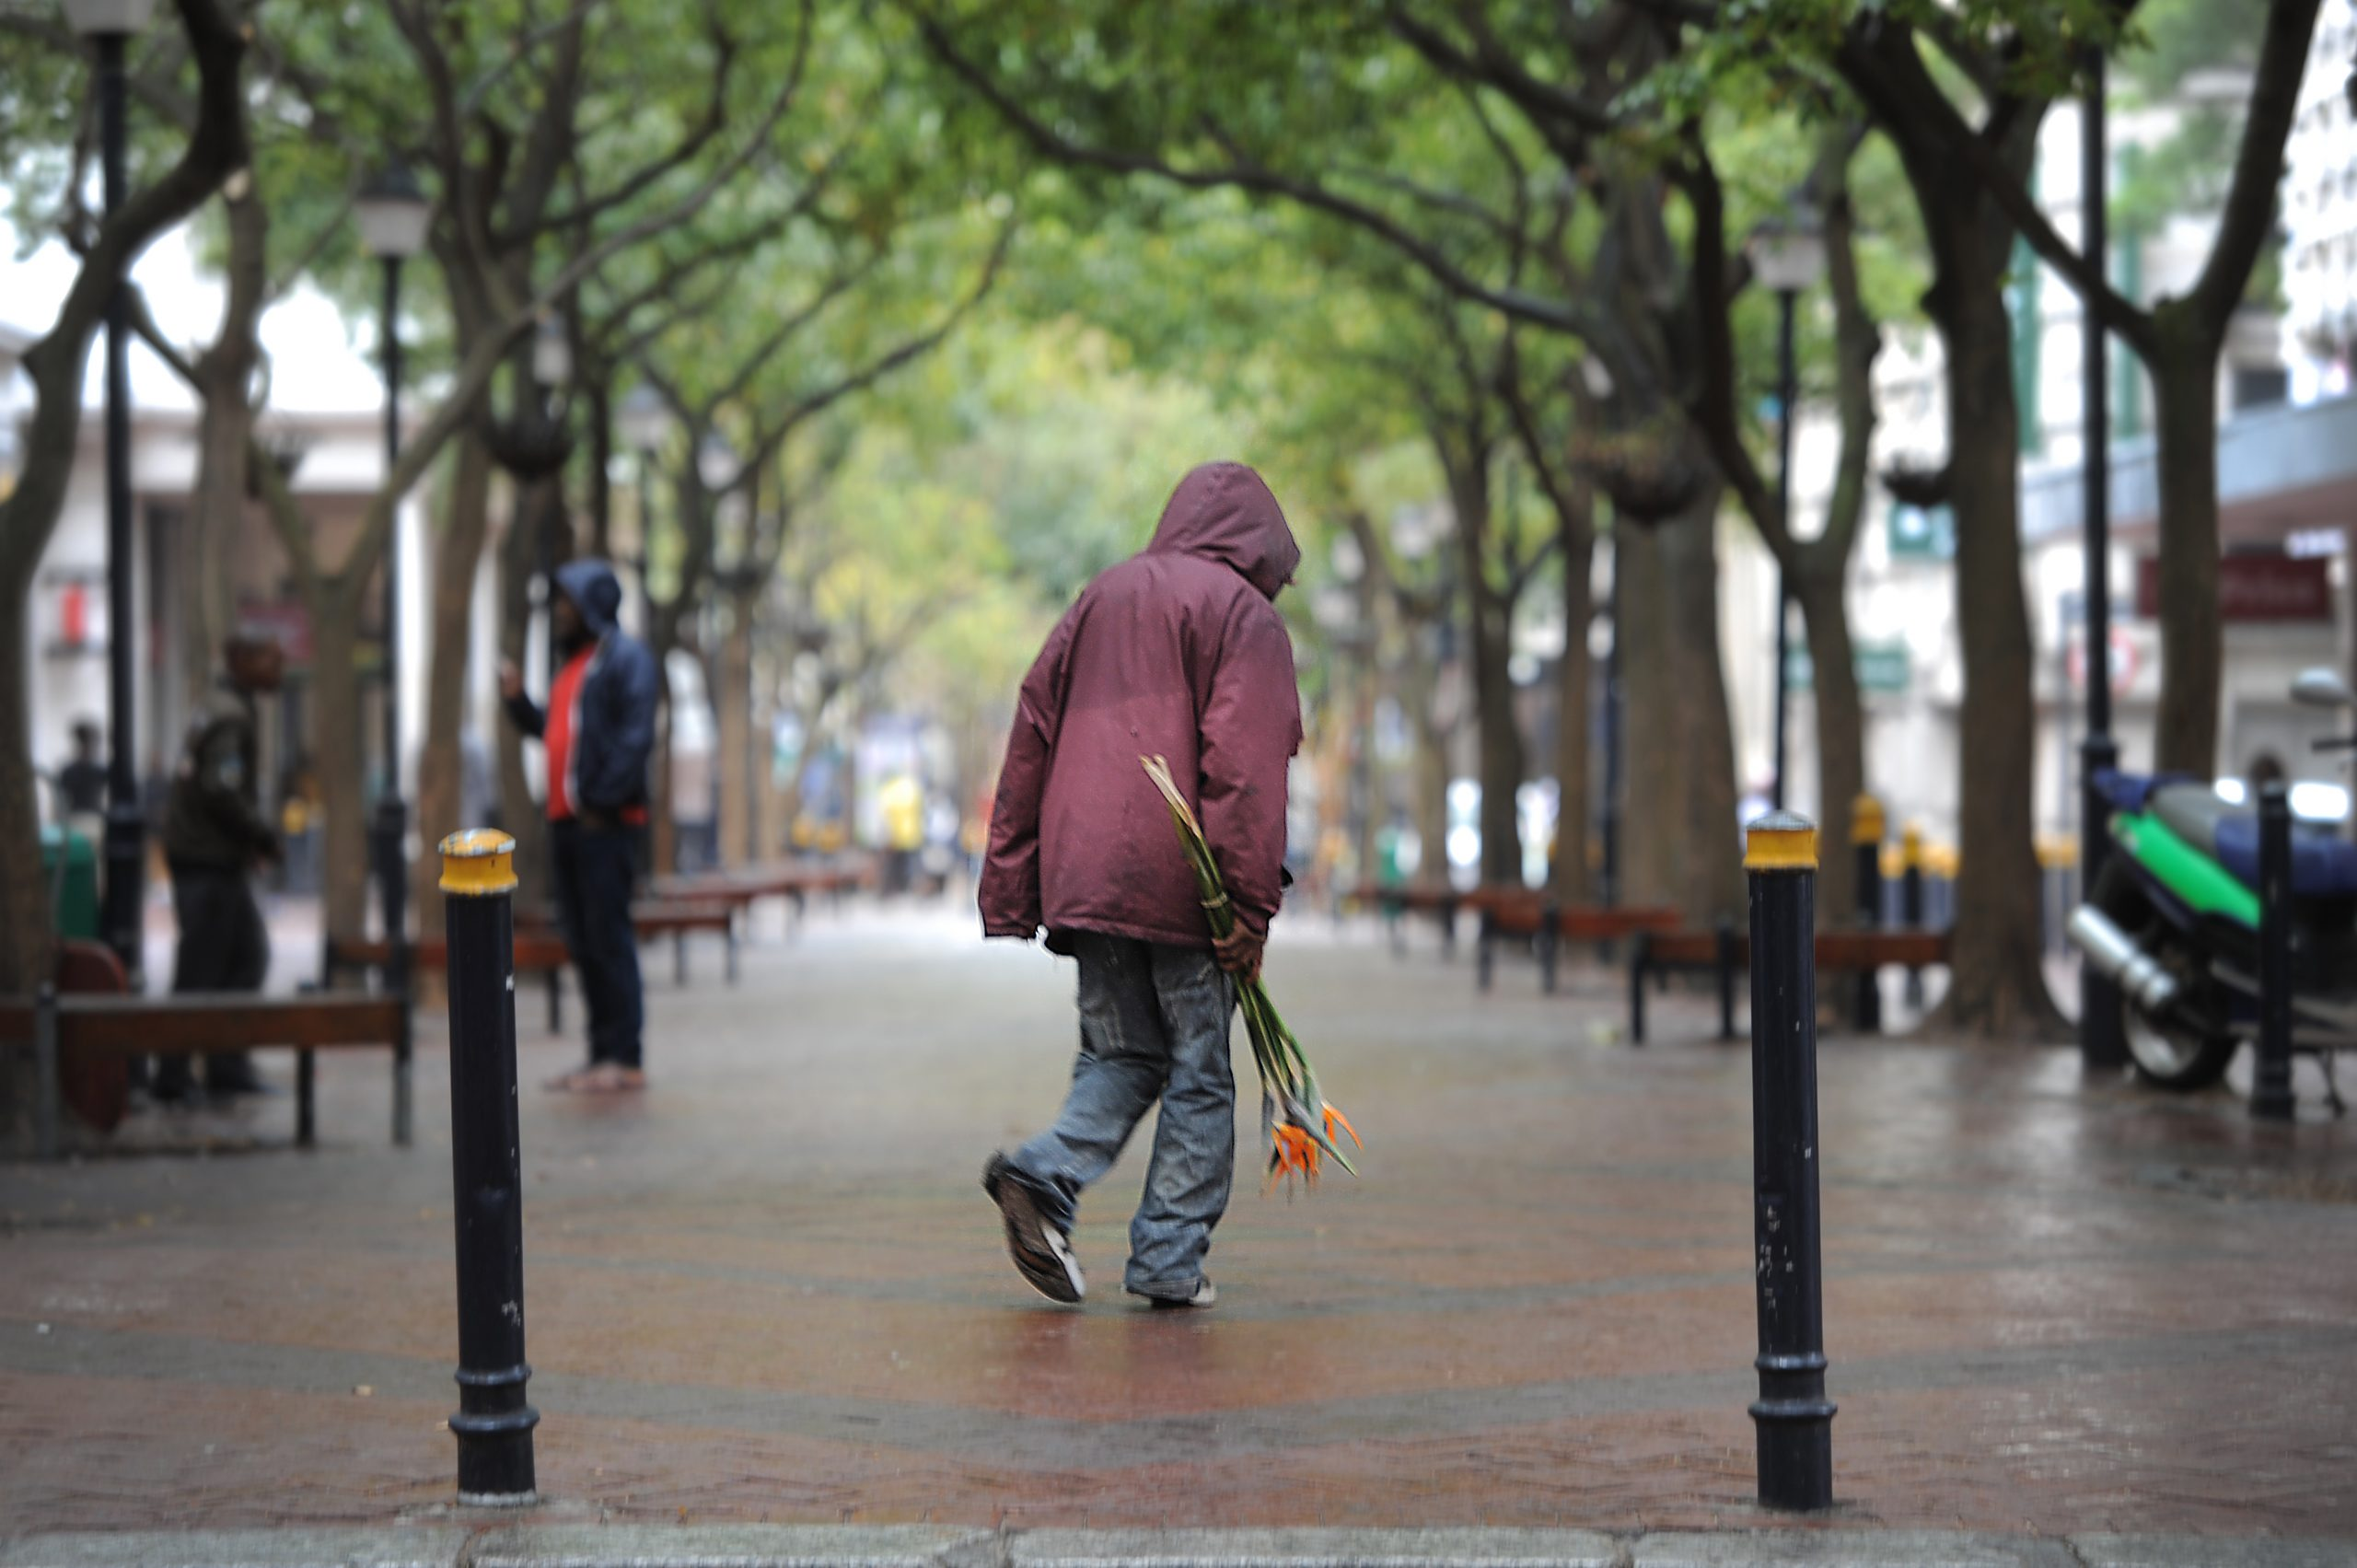 [Virtual Colloquium] Homelessness & Covid-19 in the City of Tshwane